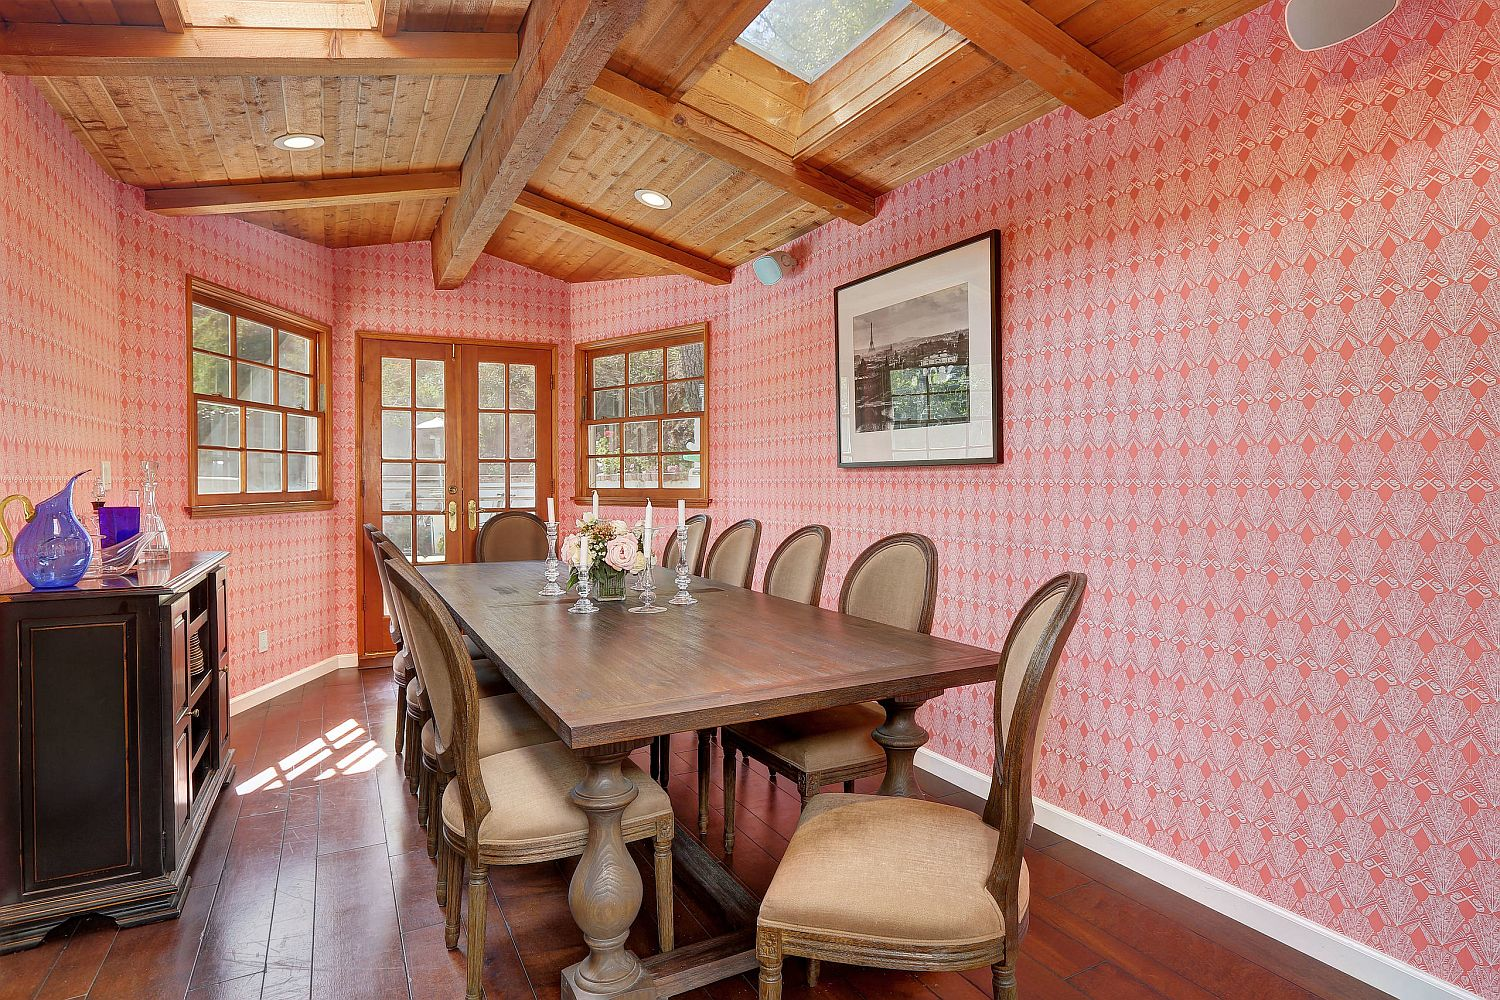 Pink wallpaper covers the walls of this eclectic modern dining room with wooden ceiling